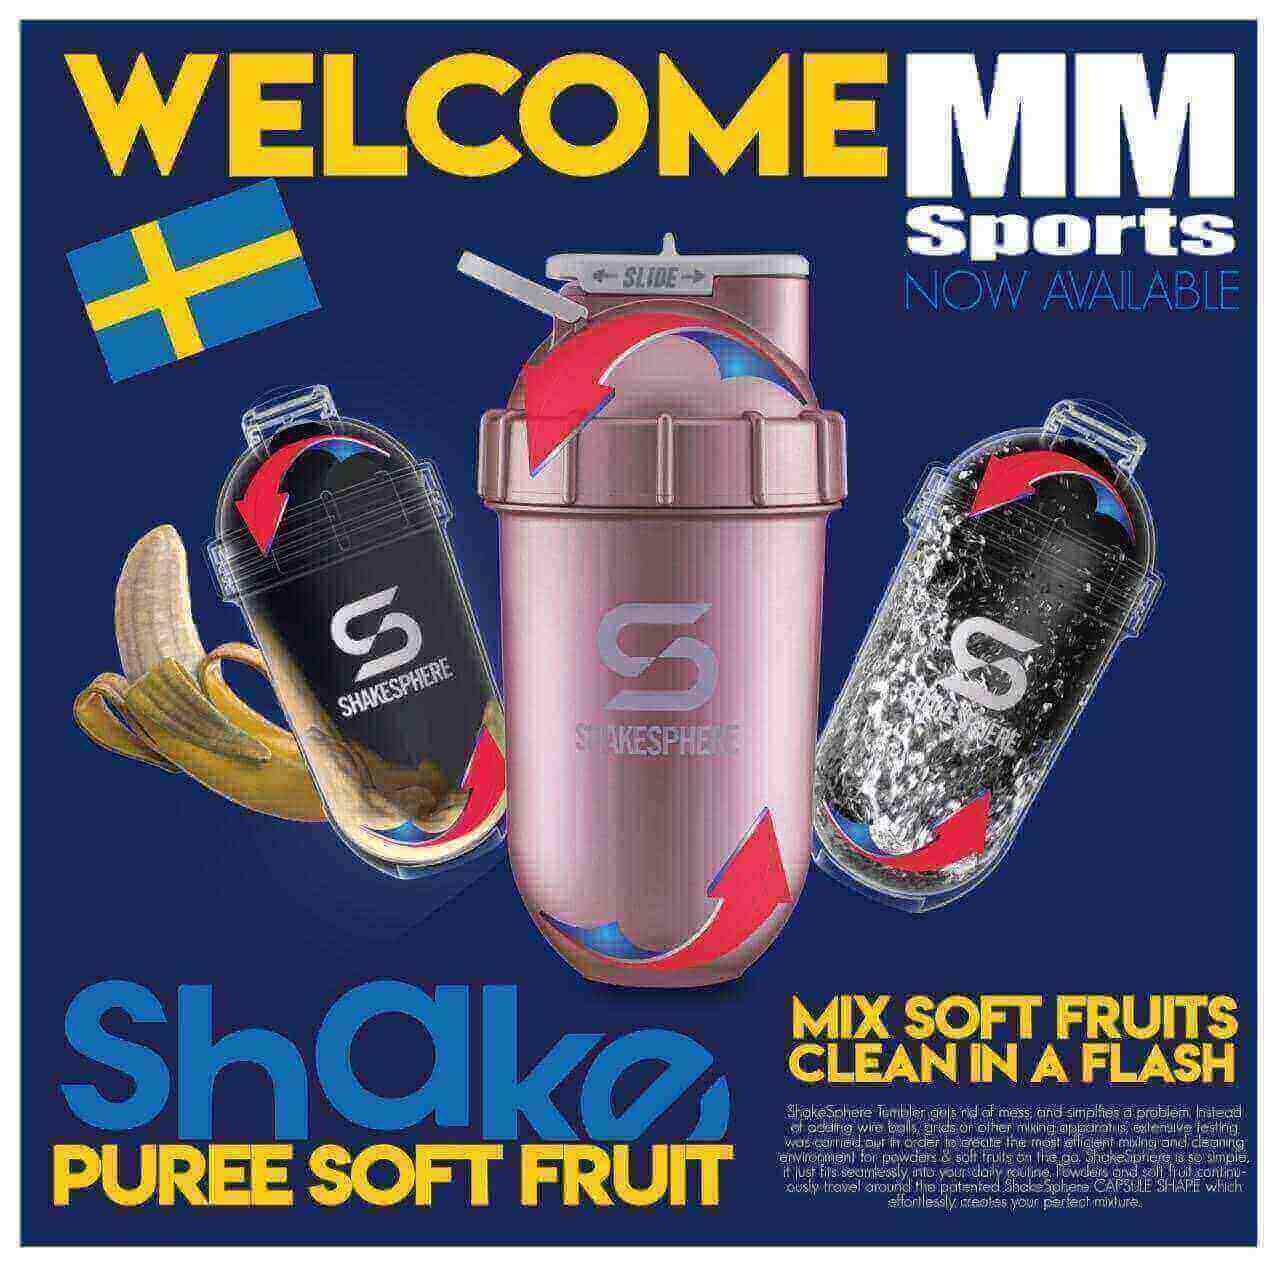 Welcome MM Sports Sweden